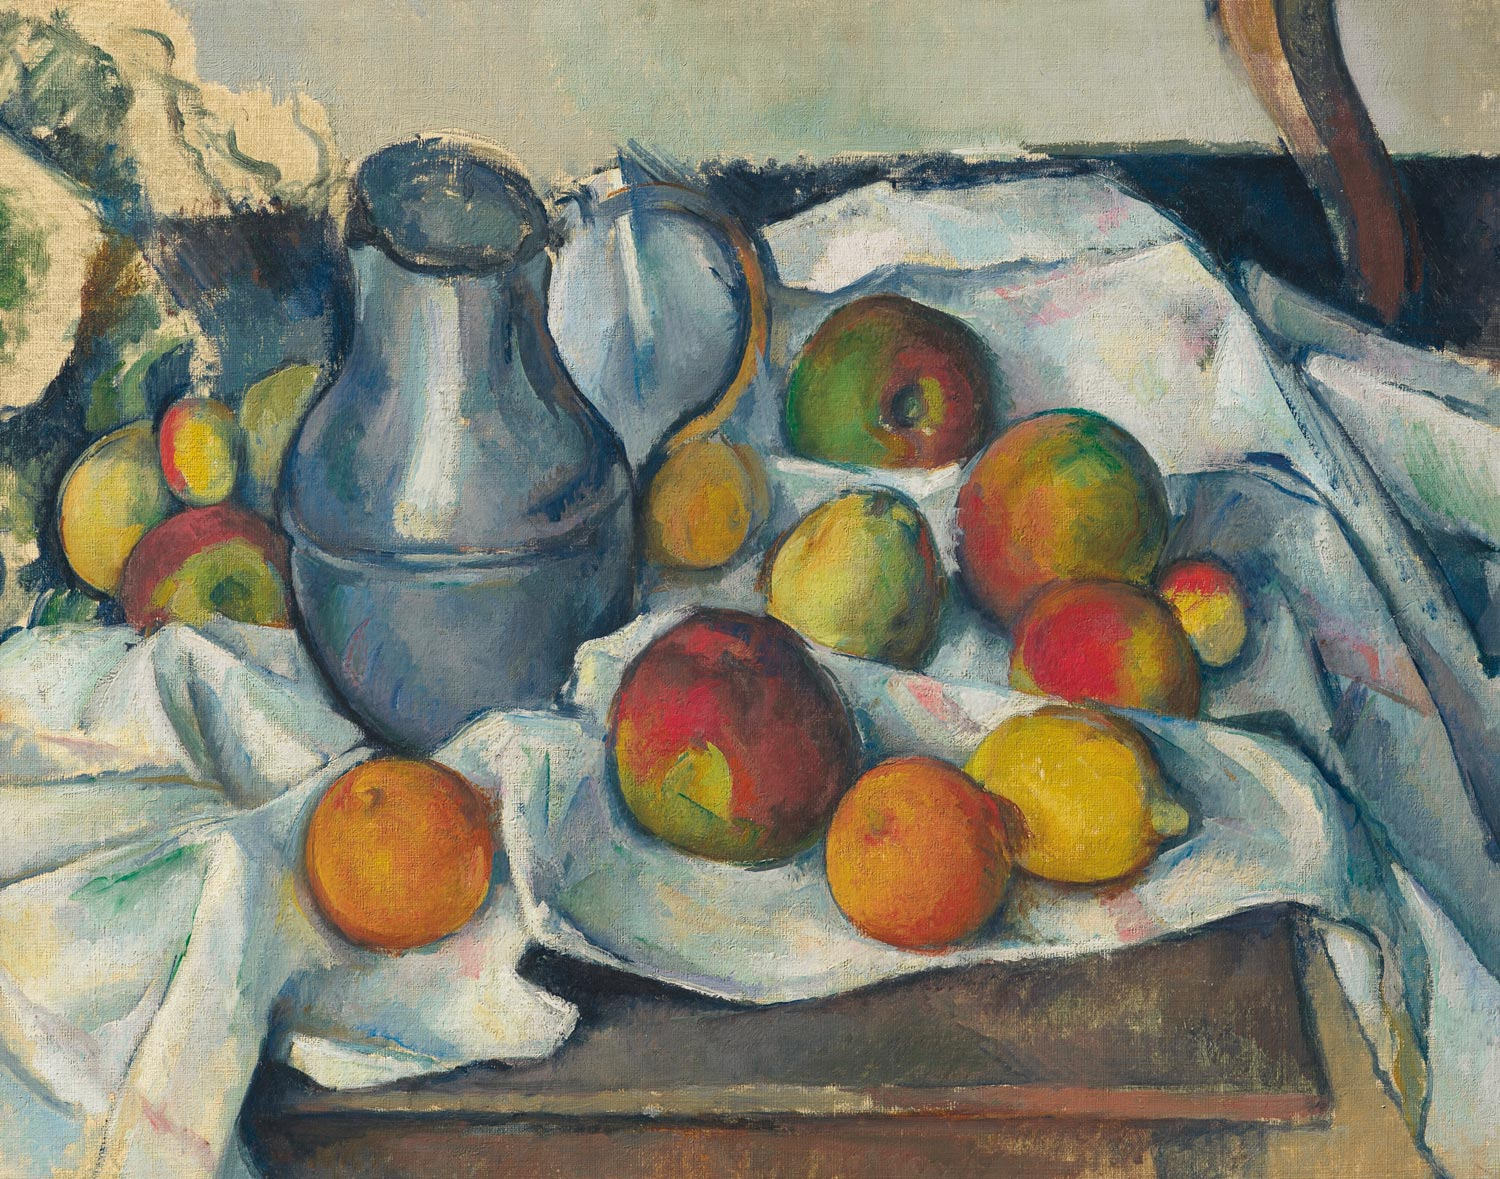 Paul Cézanne (1839-1906), Bouilloire et fruits, 1888-1890. Oil on canvas. 18 ⅜ x 23 in. Estimate on request. Offered in the Impressionist and Modern Art Evening Sale on 13 May at Christie's in New York. Newhouse Masterpieces from the Collection of S.I. Newhouse